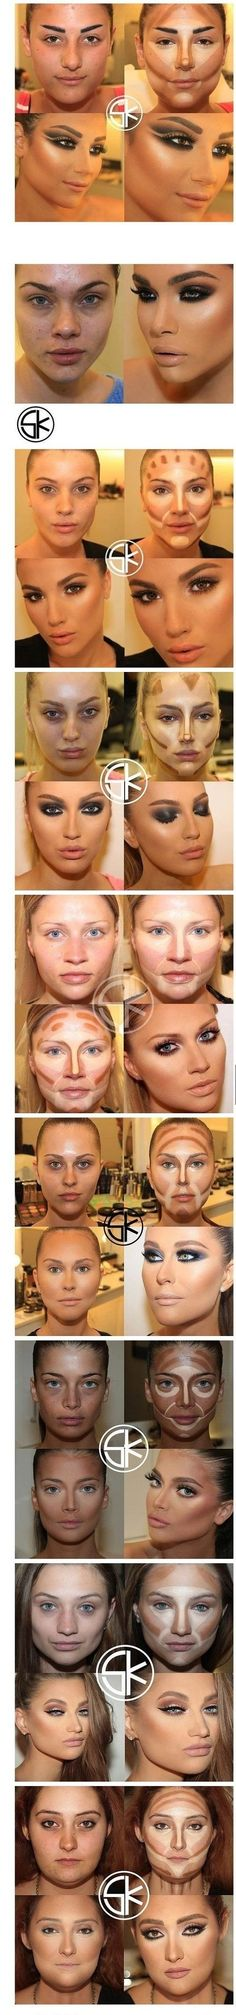 Contouring... Looks so cool and tbh very beautiful, but I'm afraid of not recognizing myself in the mirror.